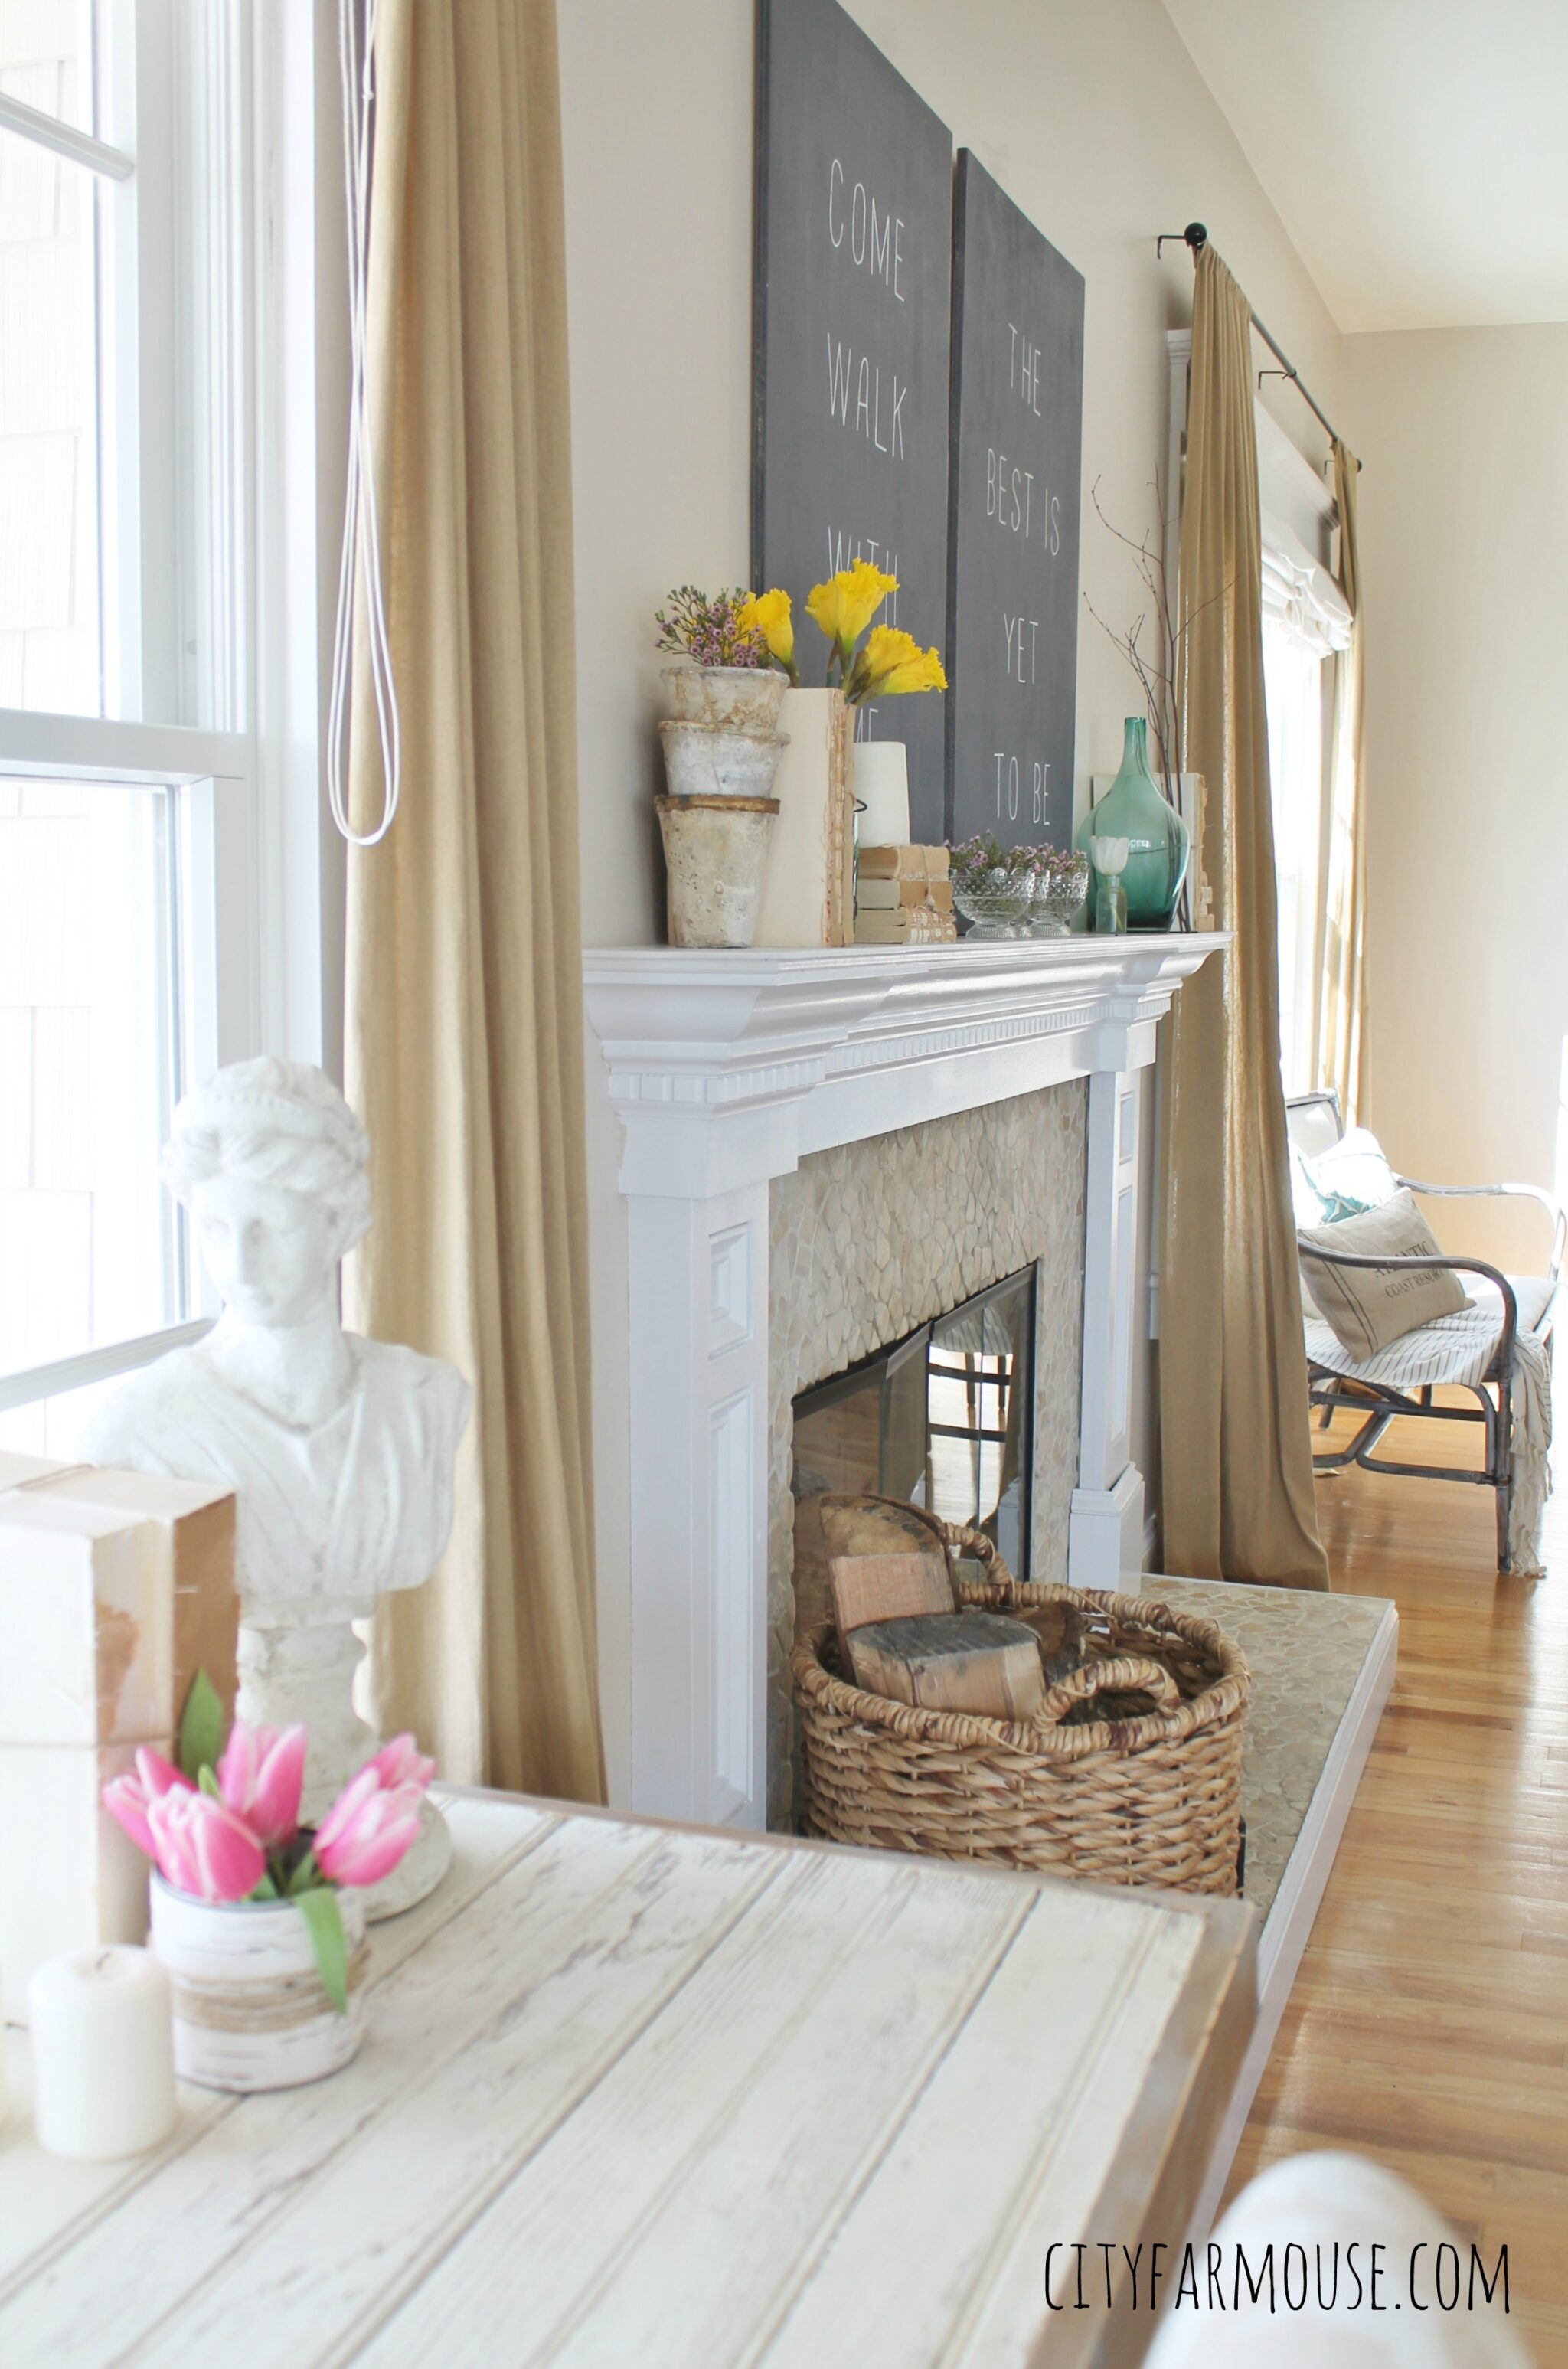 Seasons Of Home  Easy Decorating Ideas for Spring   City Farmhouse Seasons of Home Easy Spring Decorating Ideas  City Farmhouse  DIY Barstool  Desk